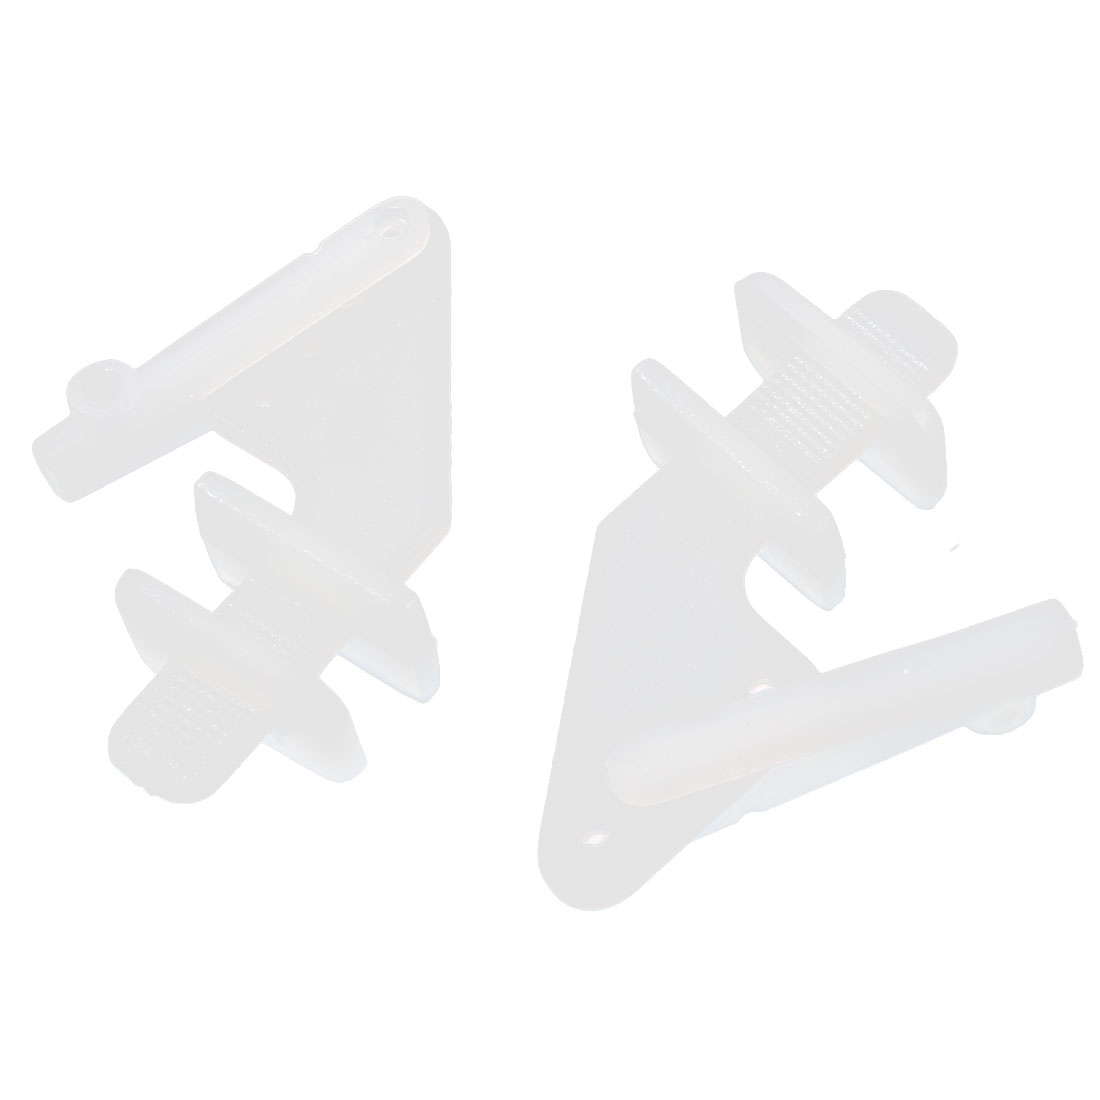 2 Pcs White Plastic Four Holes Control Horns for RC Toy Models